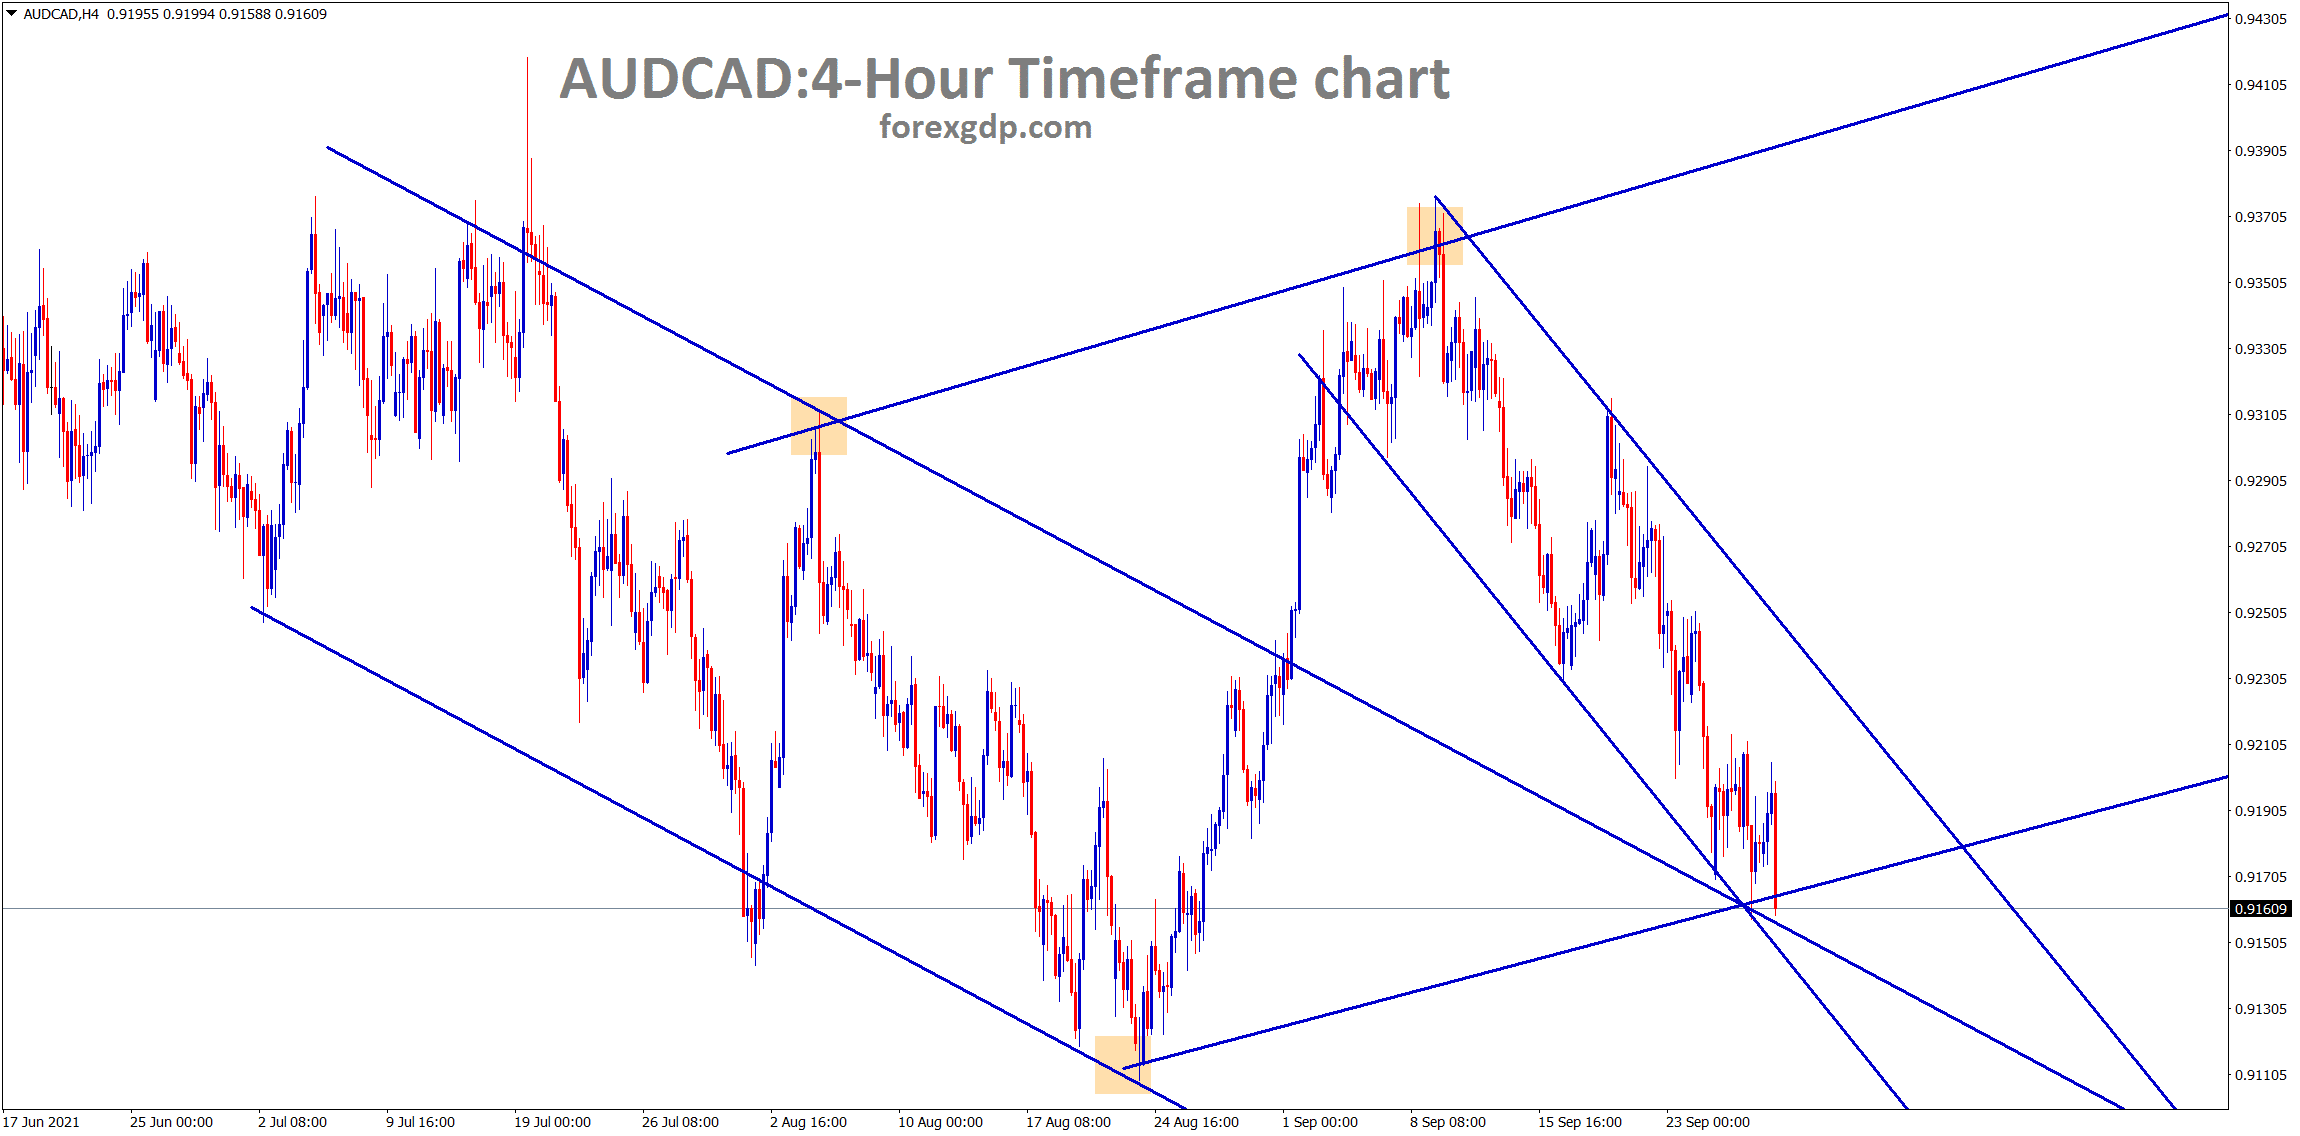 AUDCAD hits the low level again in different channel lines and the previous retest zone